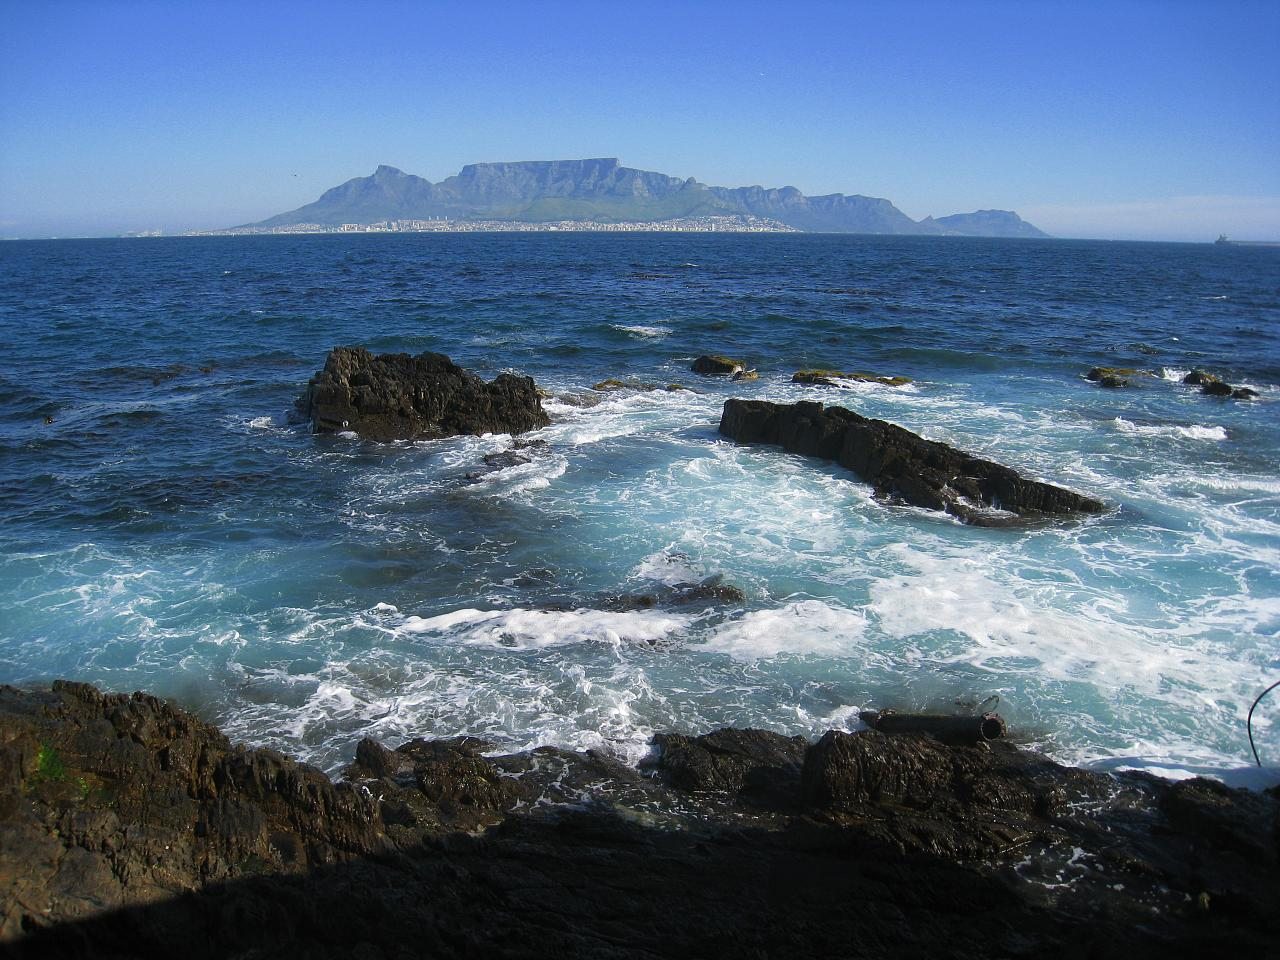 Cape Town as seen from Robben Island